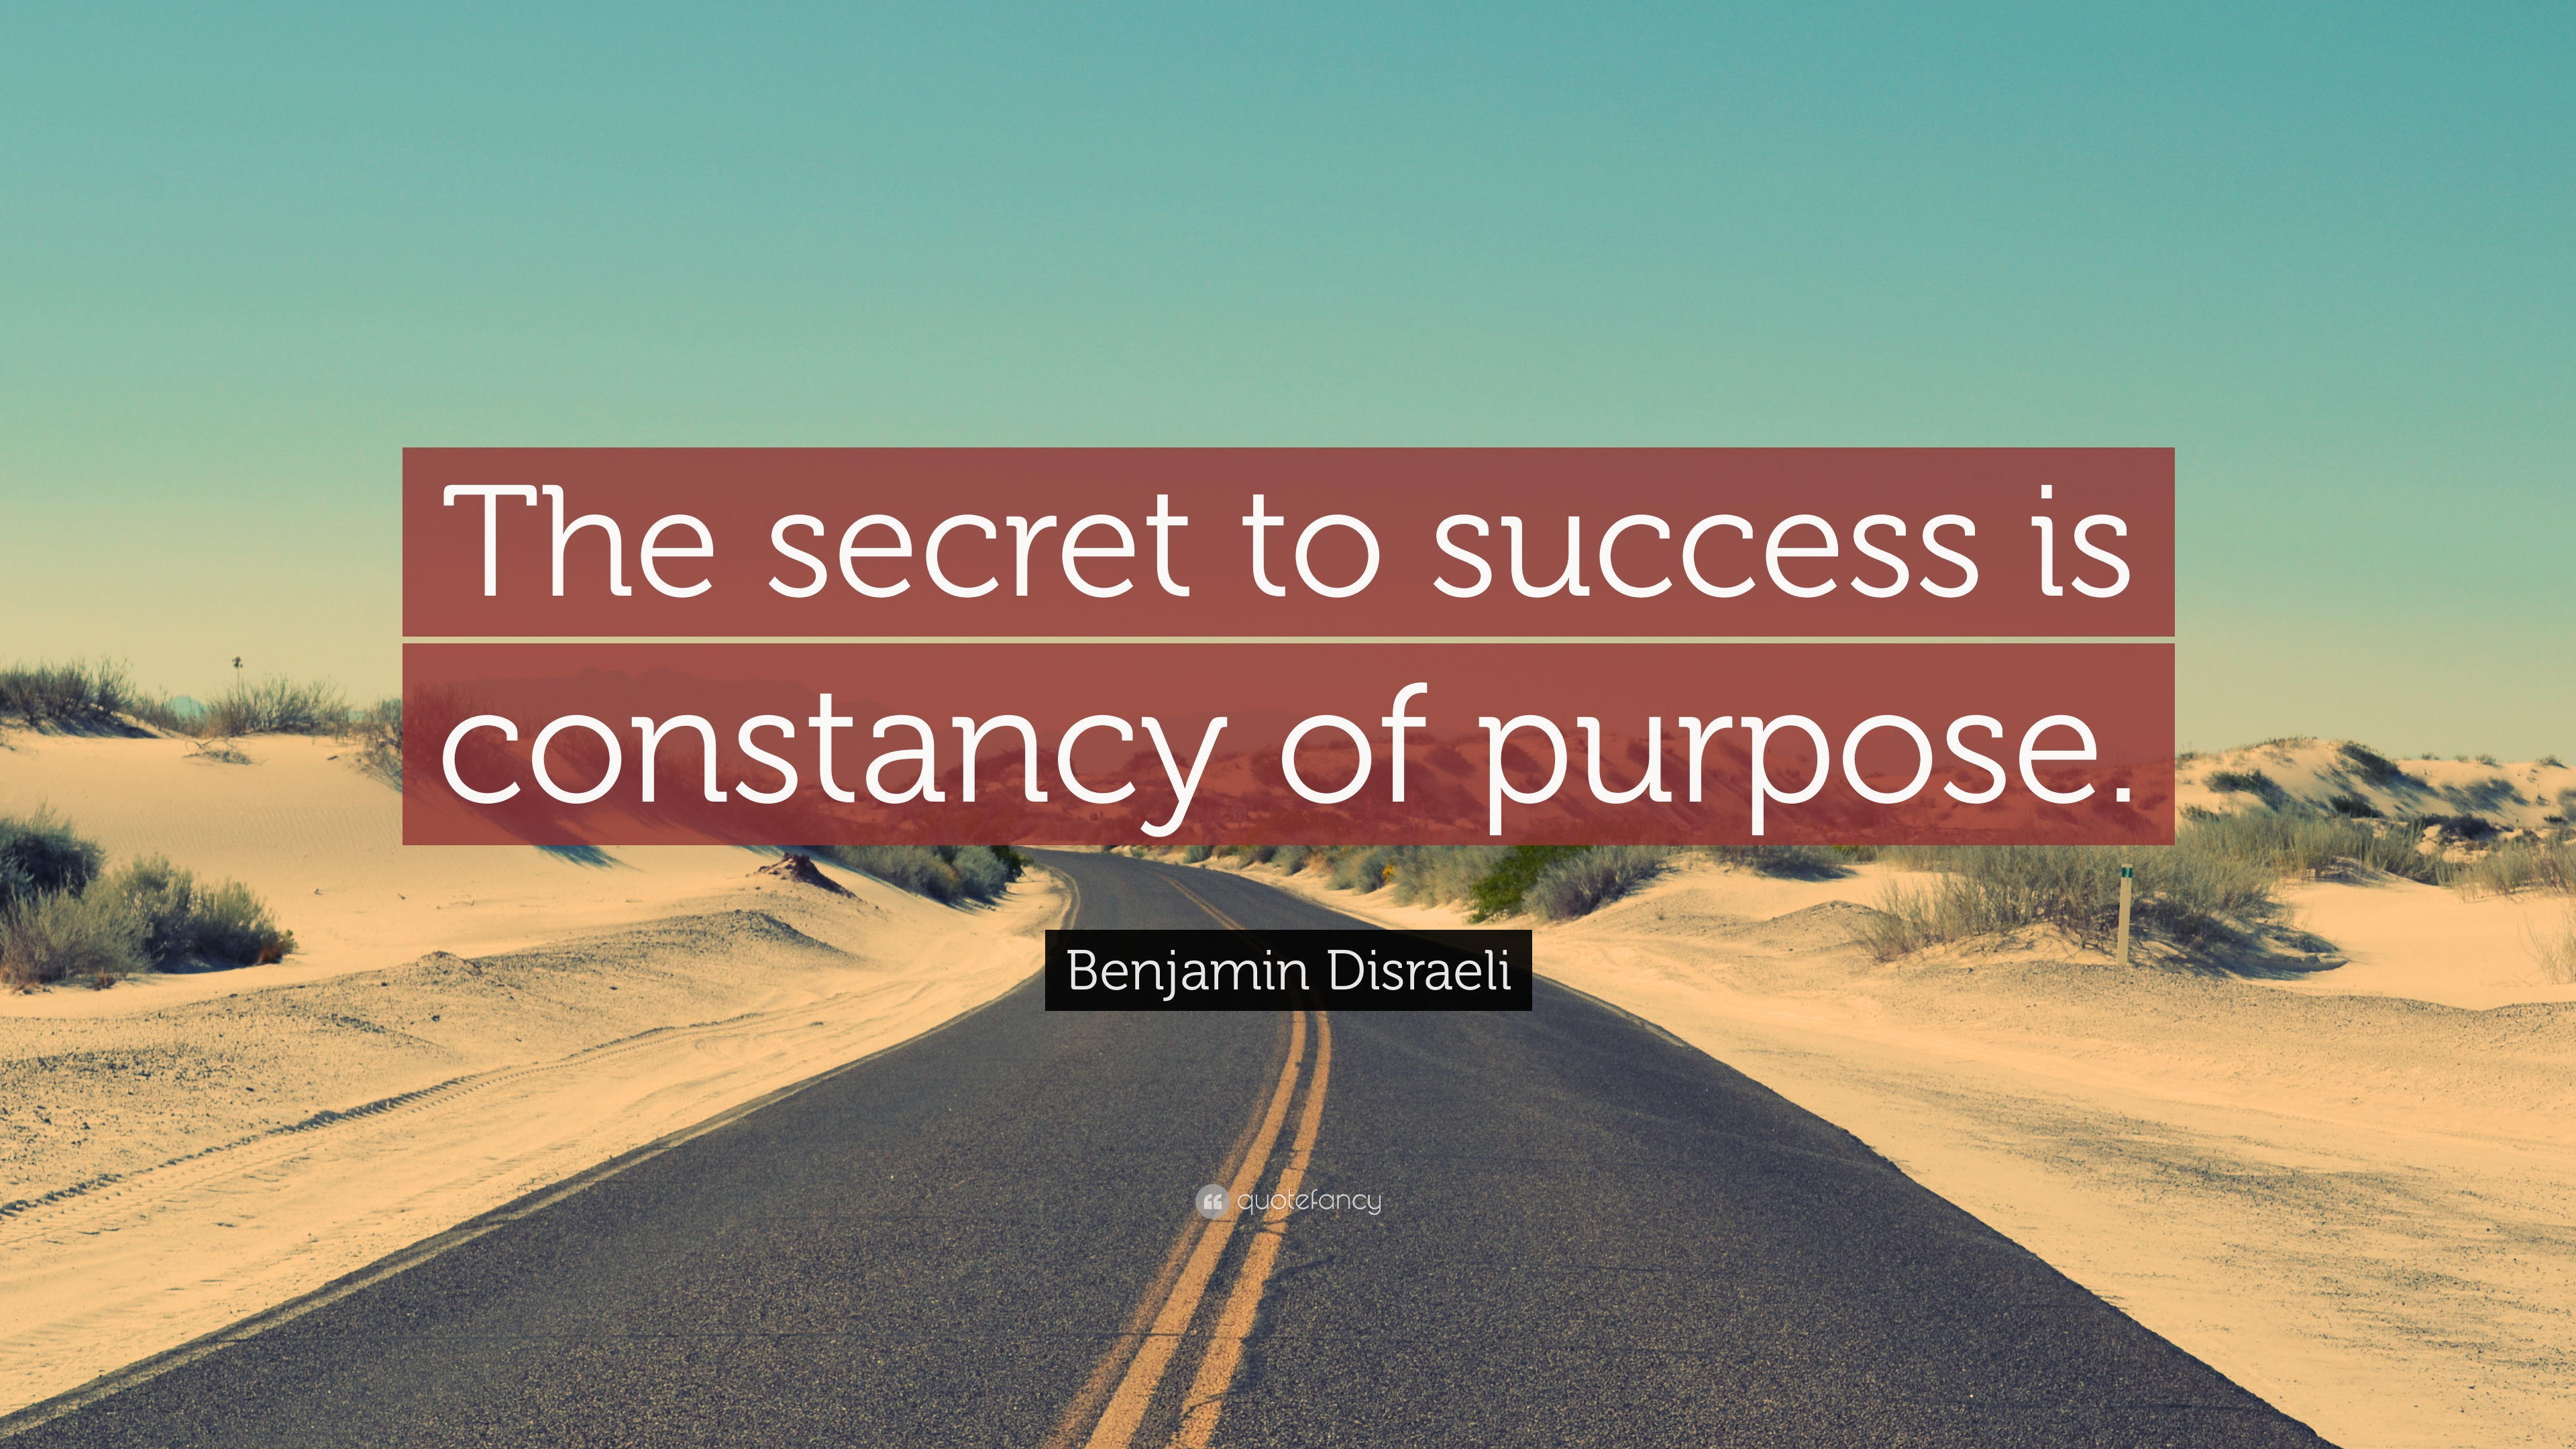 Sarcastic Quotes Wallpaper Benjamin Disraeli Quote The Secret To Success Is